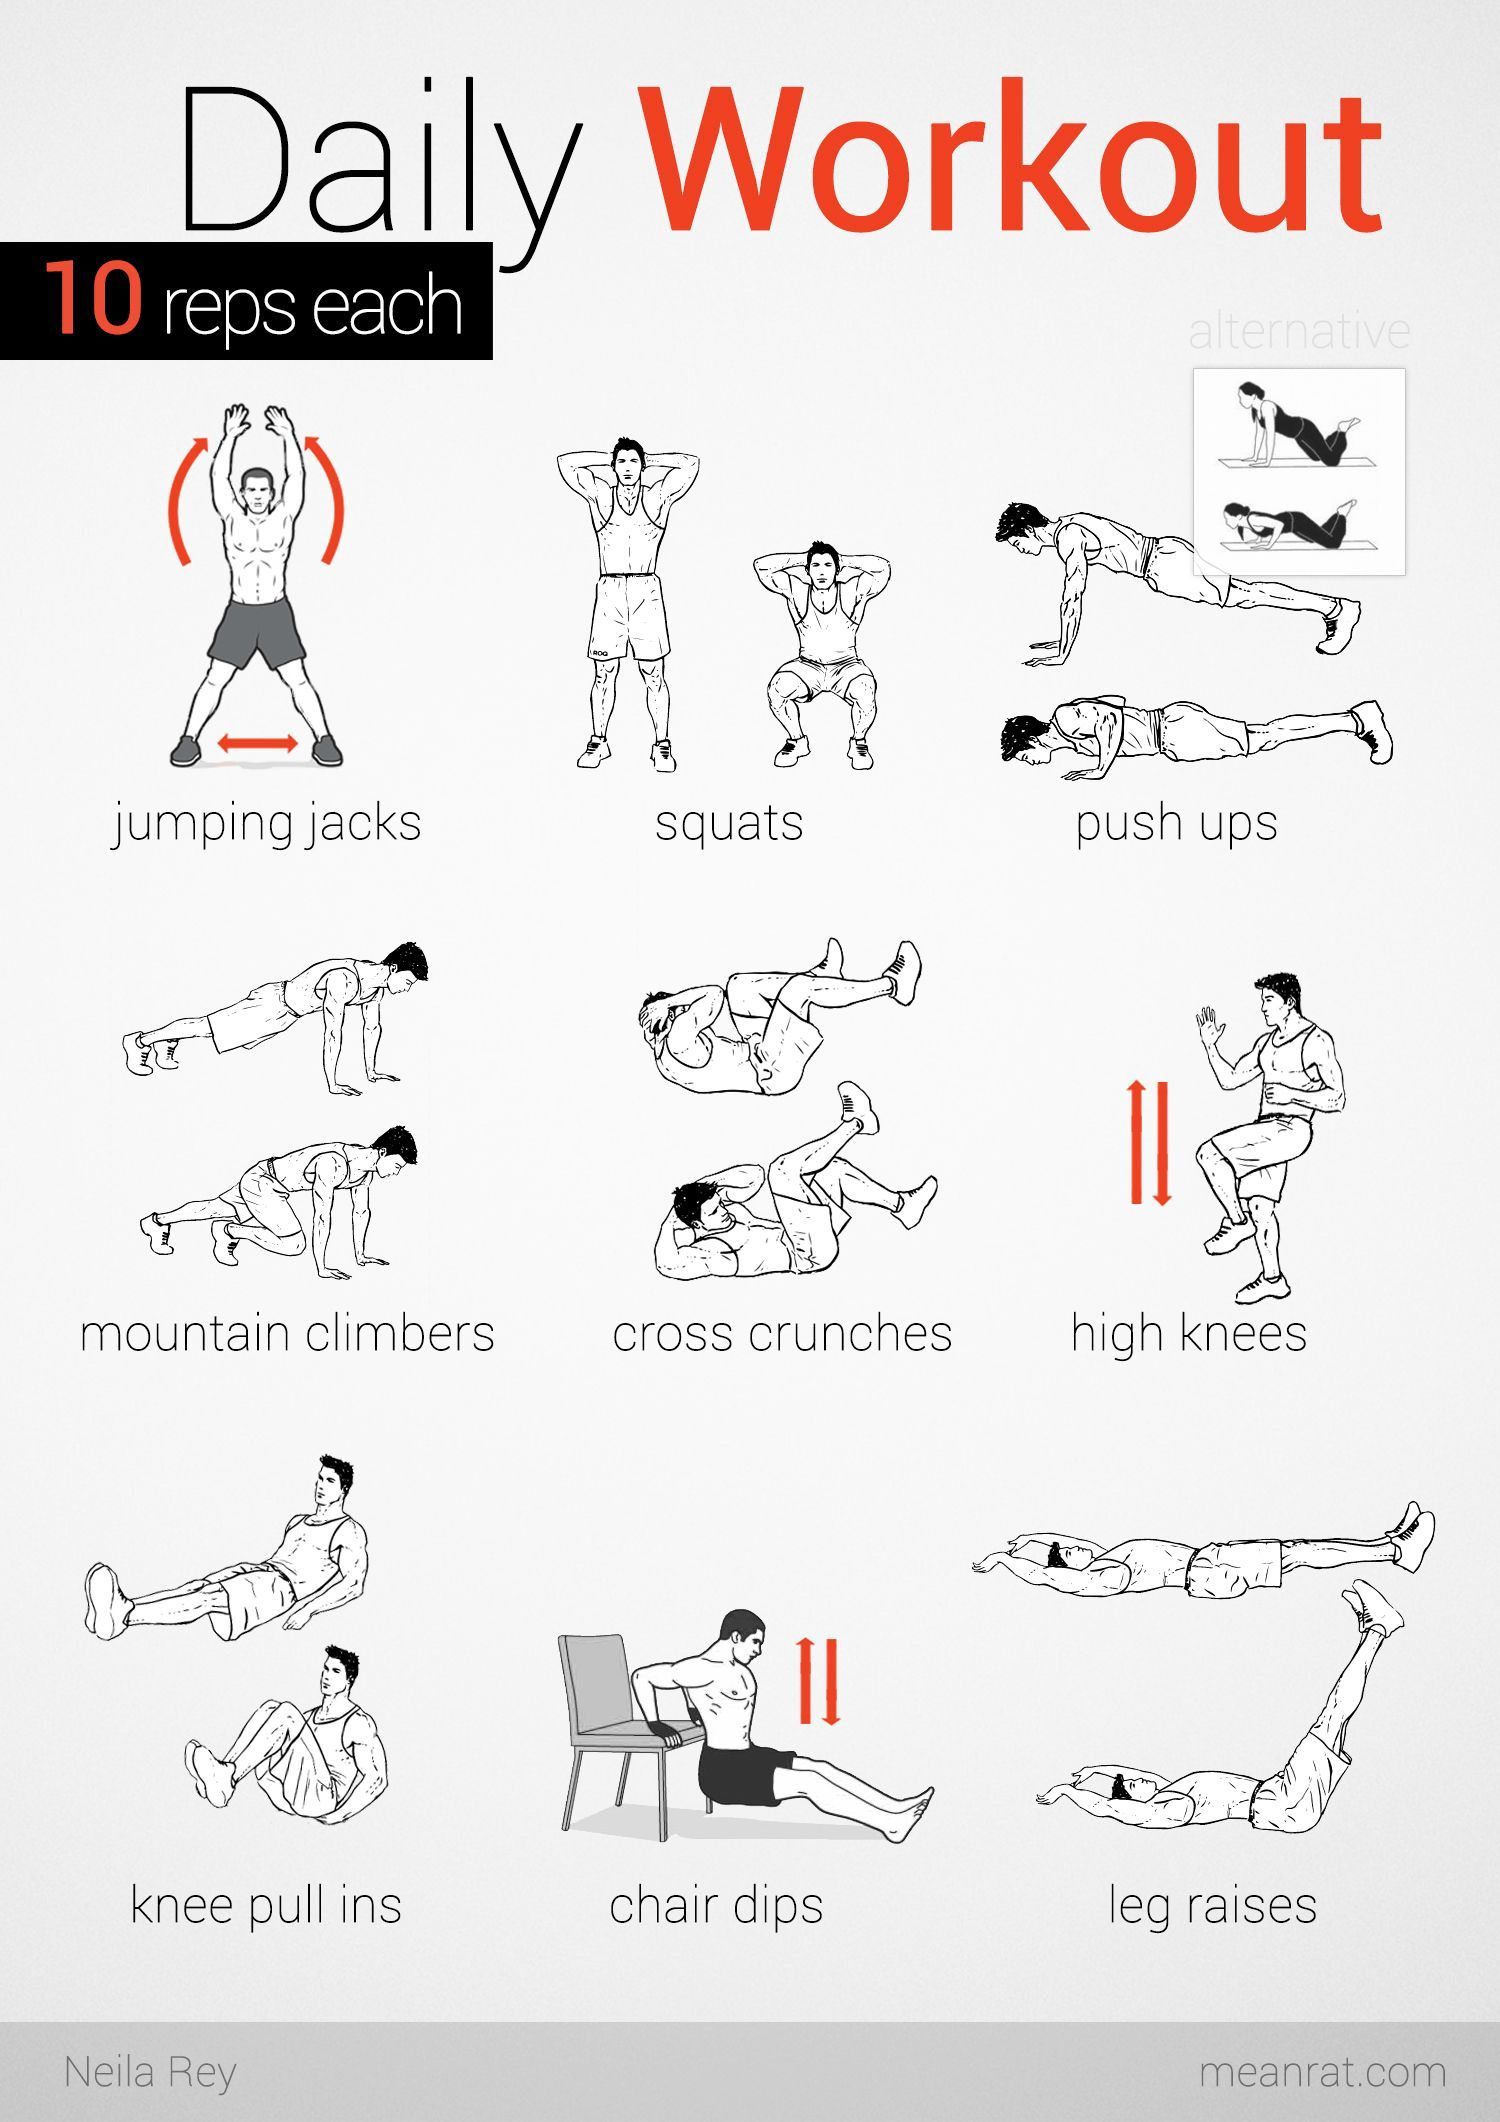 Daily Workout #exercise #exercises #workout #fitness